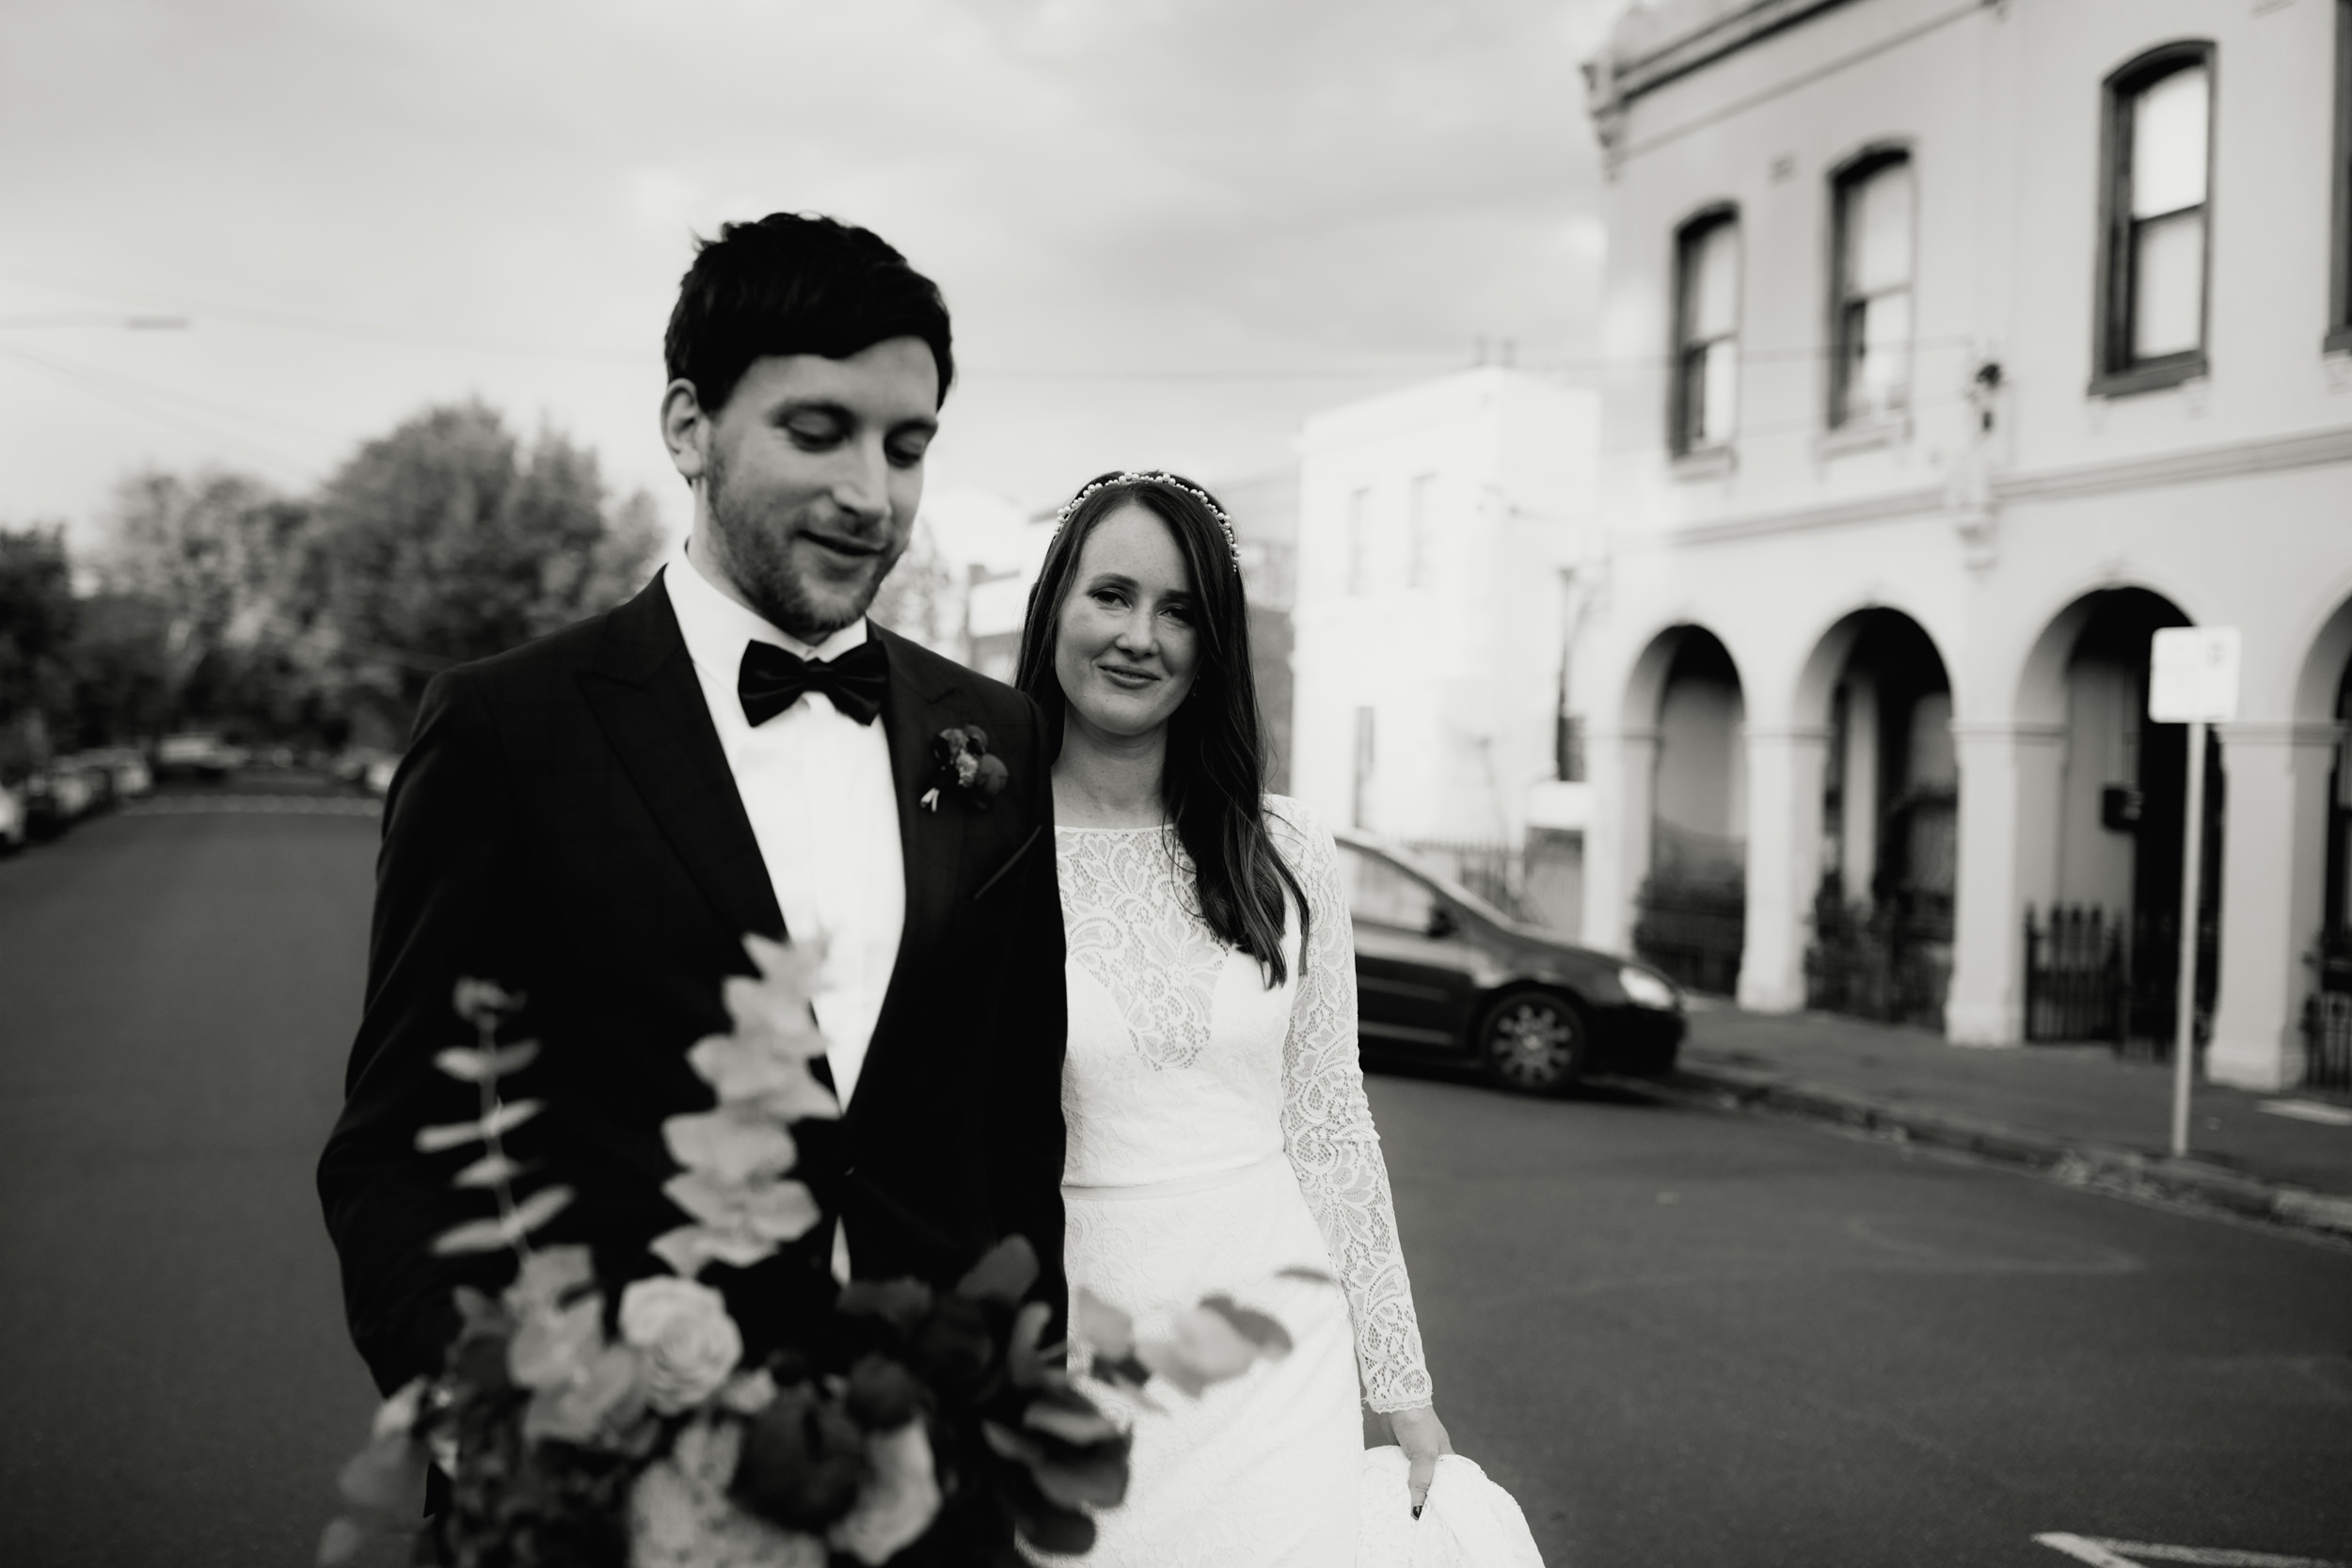 I_Got_You_Babe_Weddings_Emily_Matt_Rupert_Glasshaus_Melbourne0179.JPG